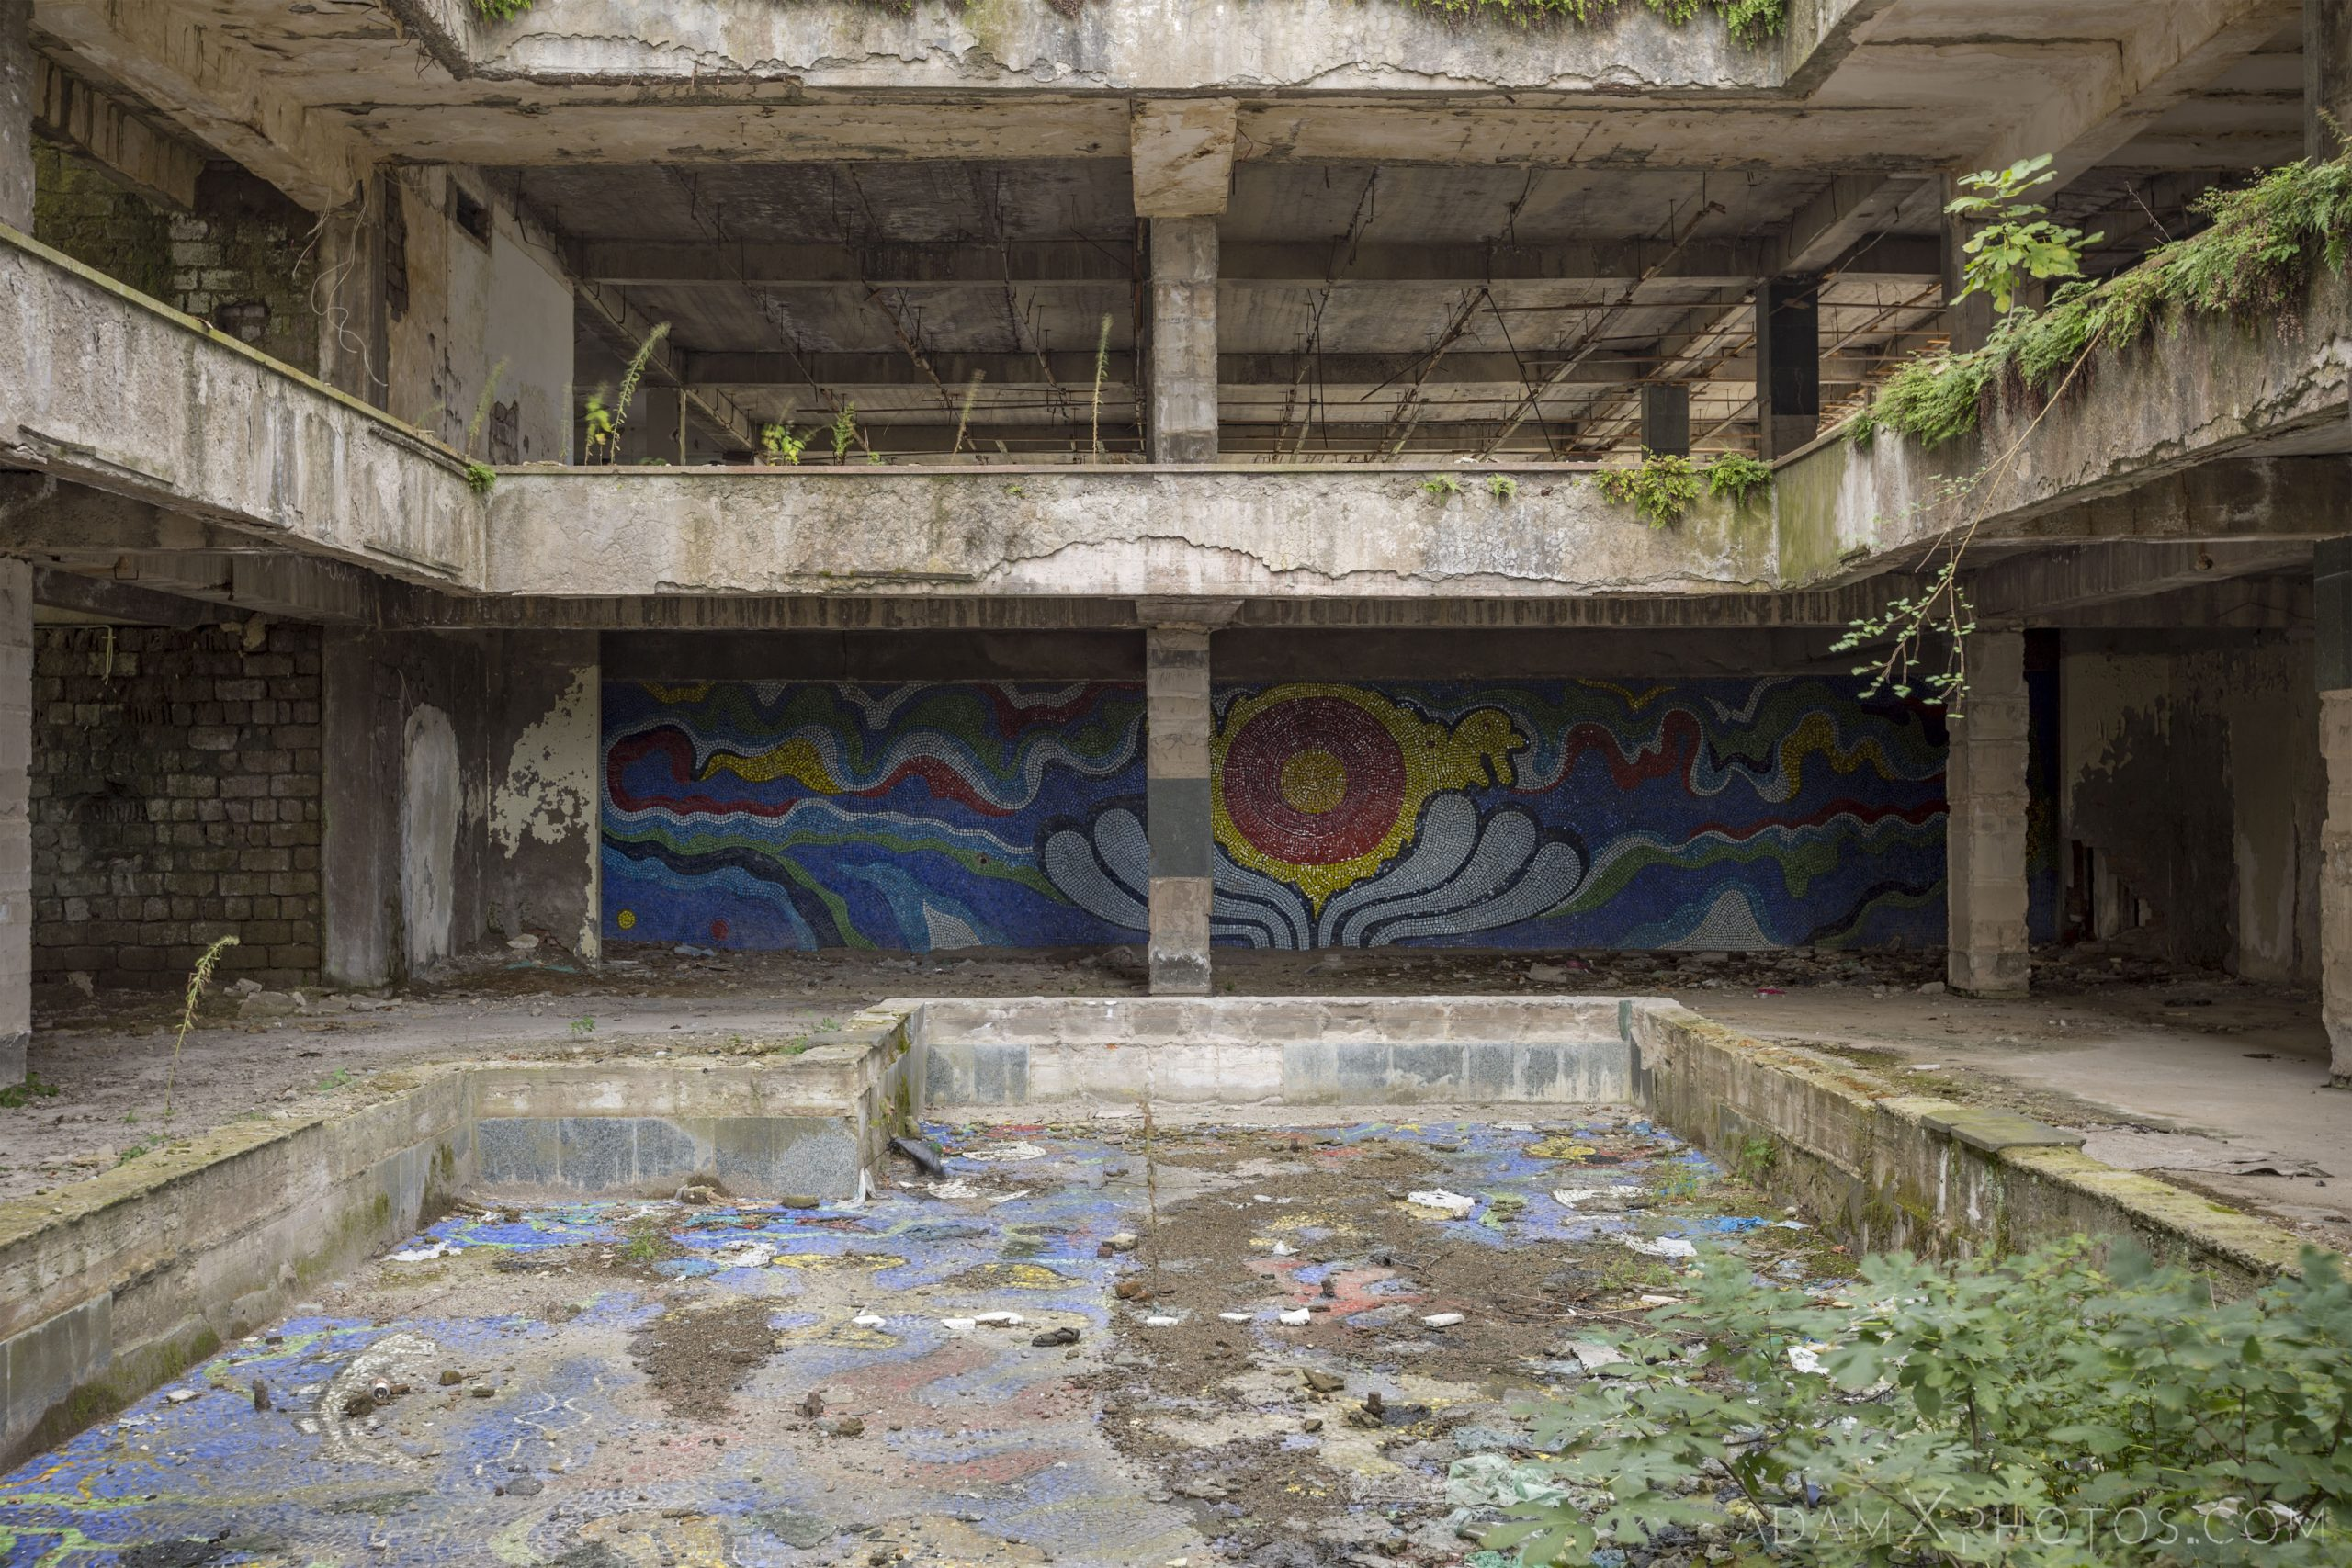 mural soviet pool mosaic overgrown concrete Hotel Sakartvelo Tskaltubo Georgia Adam X Urbex Urban Exploration 2018 Abandoned Access History decay ruins lost forgotten derelict location creepy haunting eerie security